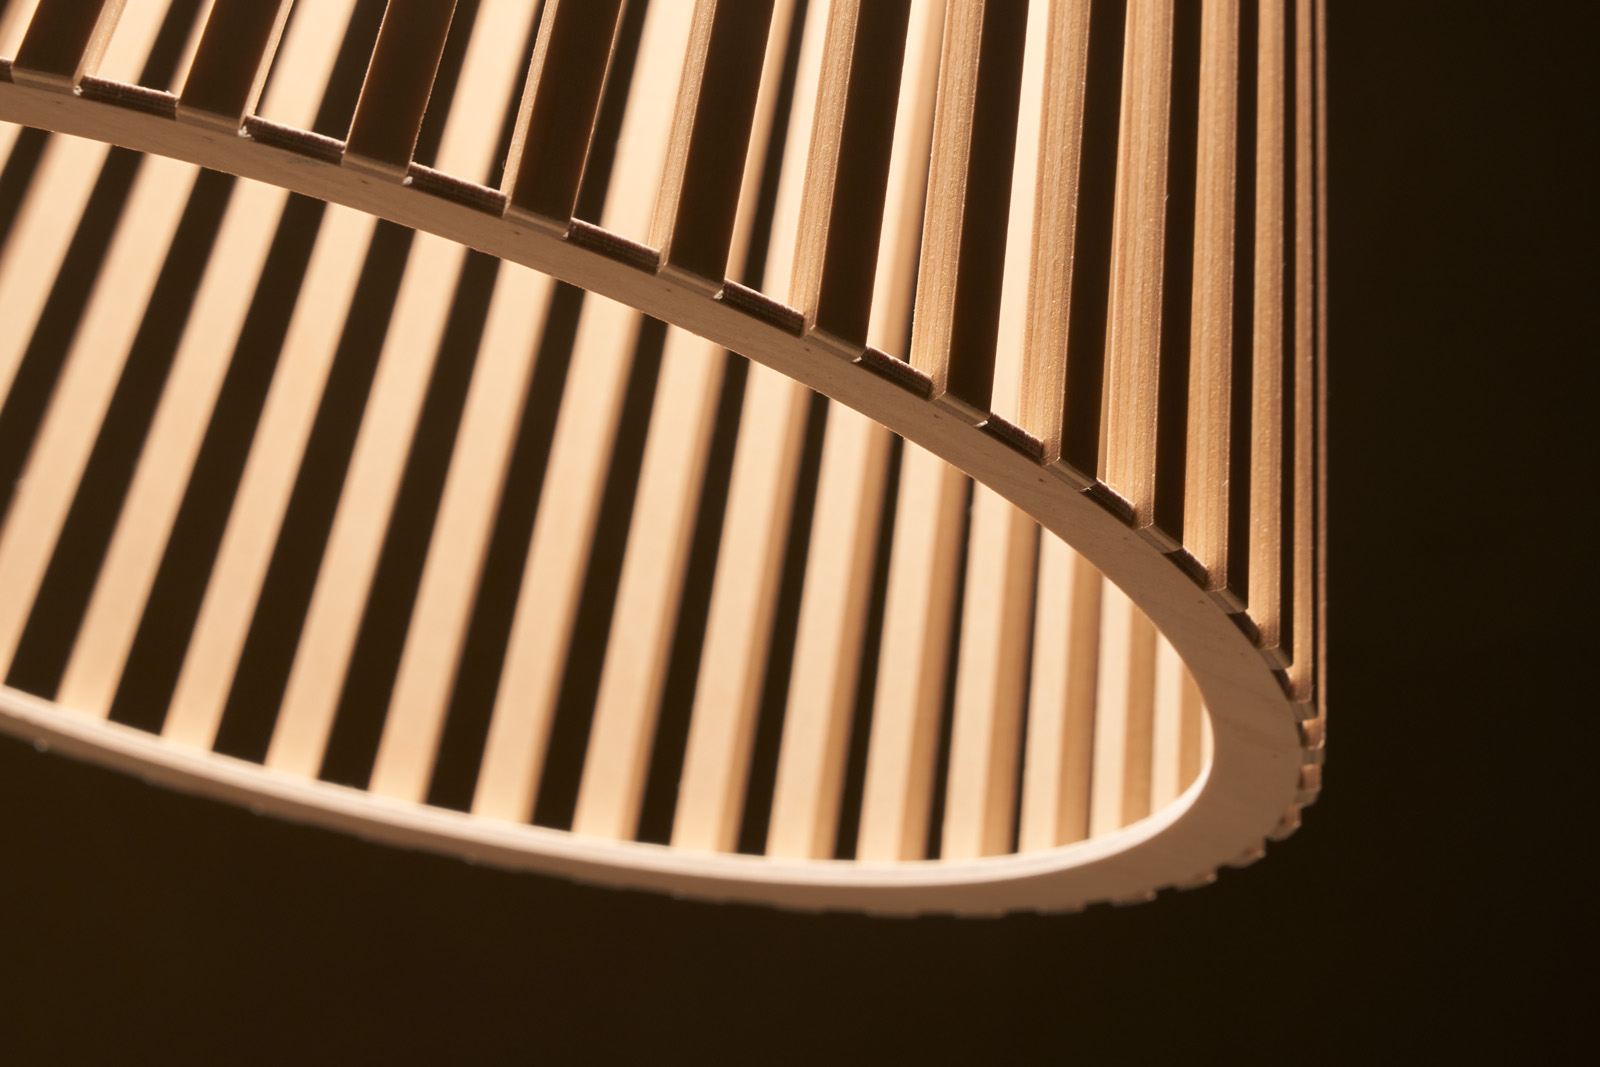 Lampshade's delicate wooden slats turn into intriguing figures as they filter light